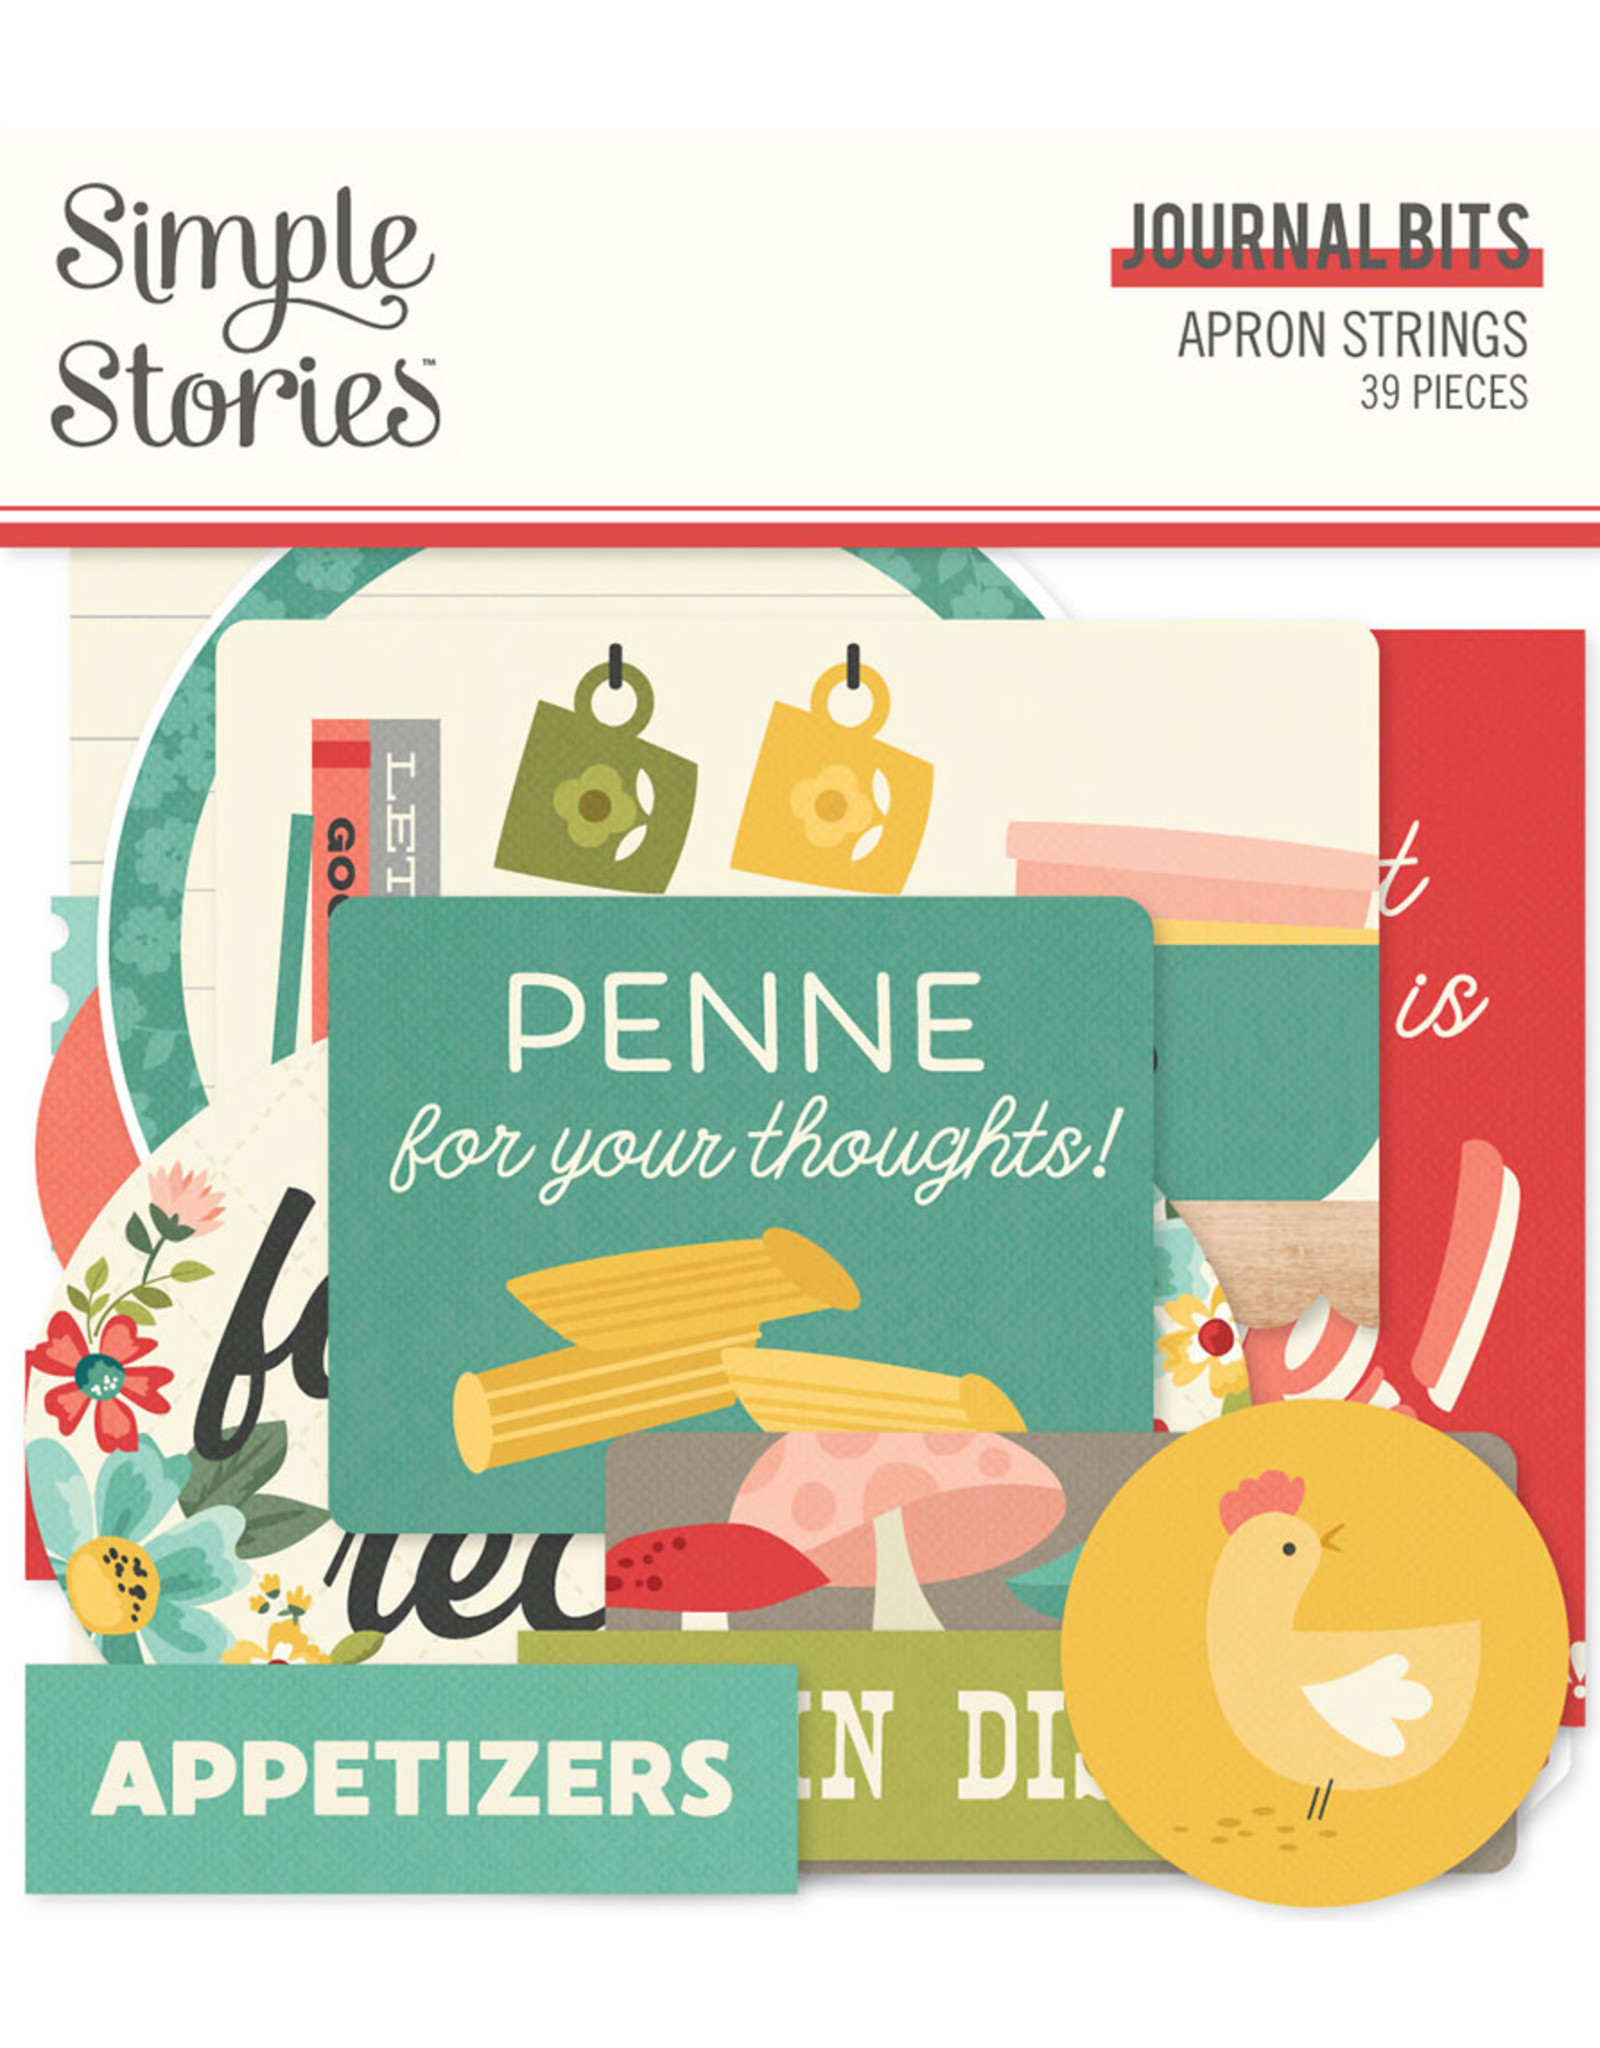 Simple Stories Apron Strings - Journal Bits